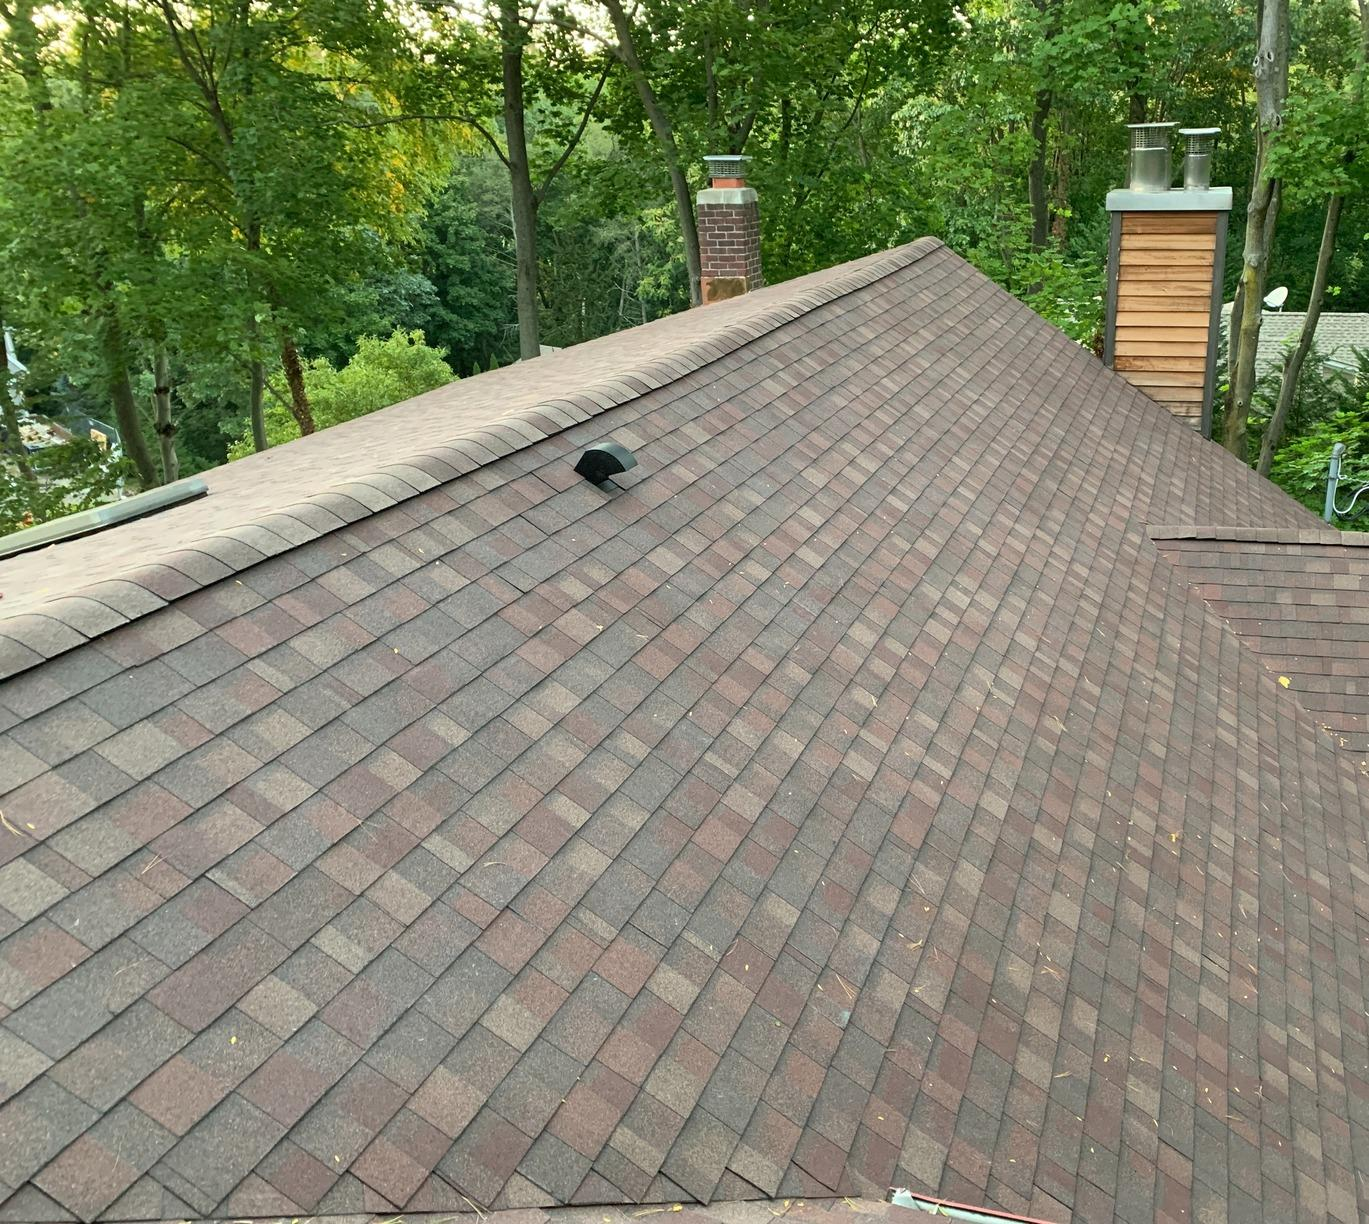 Roof Replacement in Manhasset, NY - After Photo